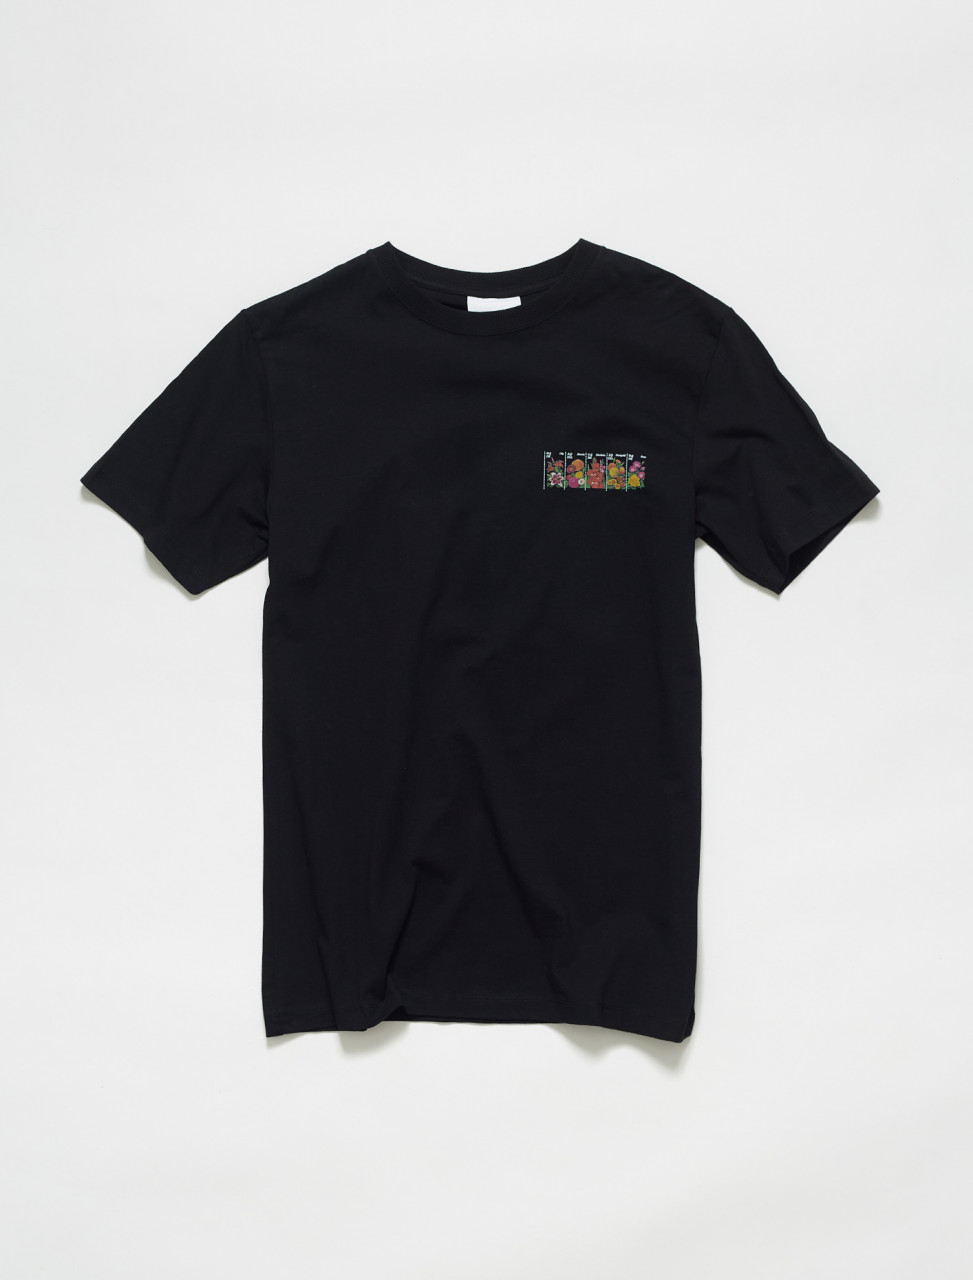 159-1000-B SOULLAND BODEGA ROSE ROSSELL T SHIRT BLACK